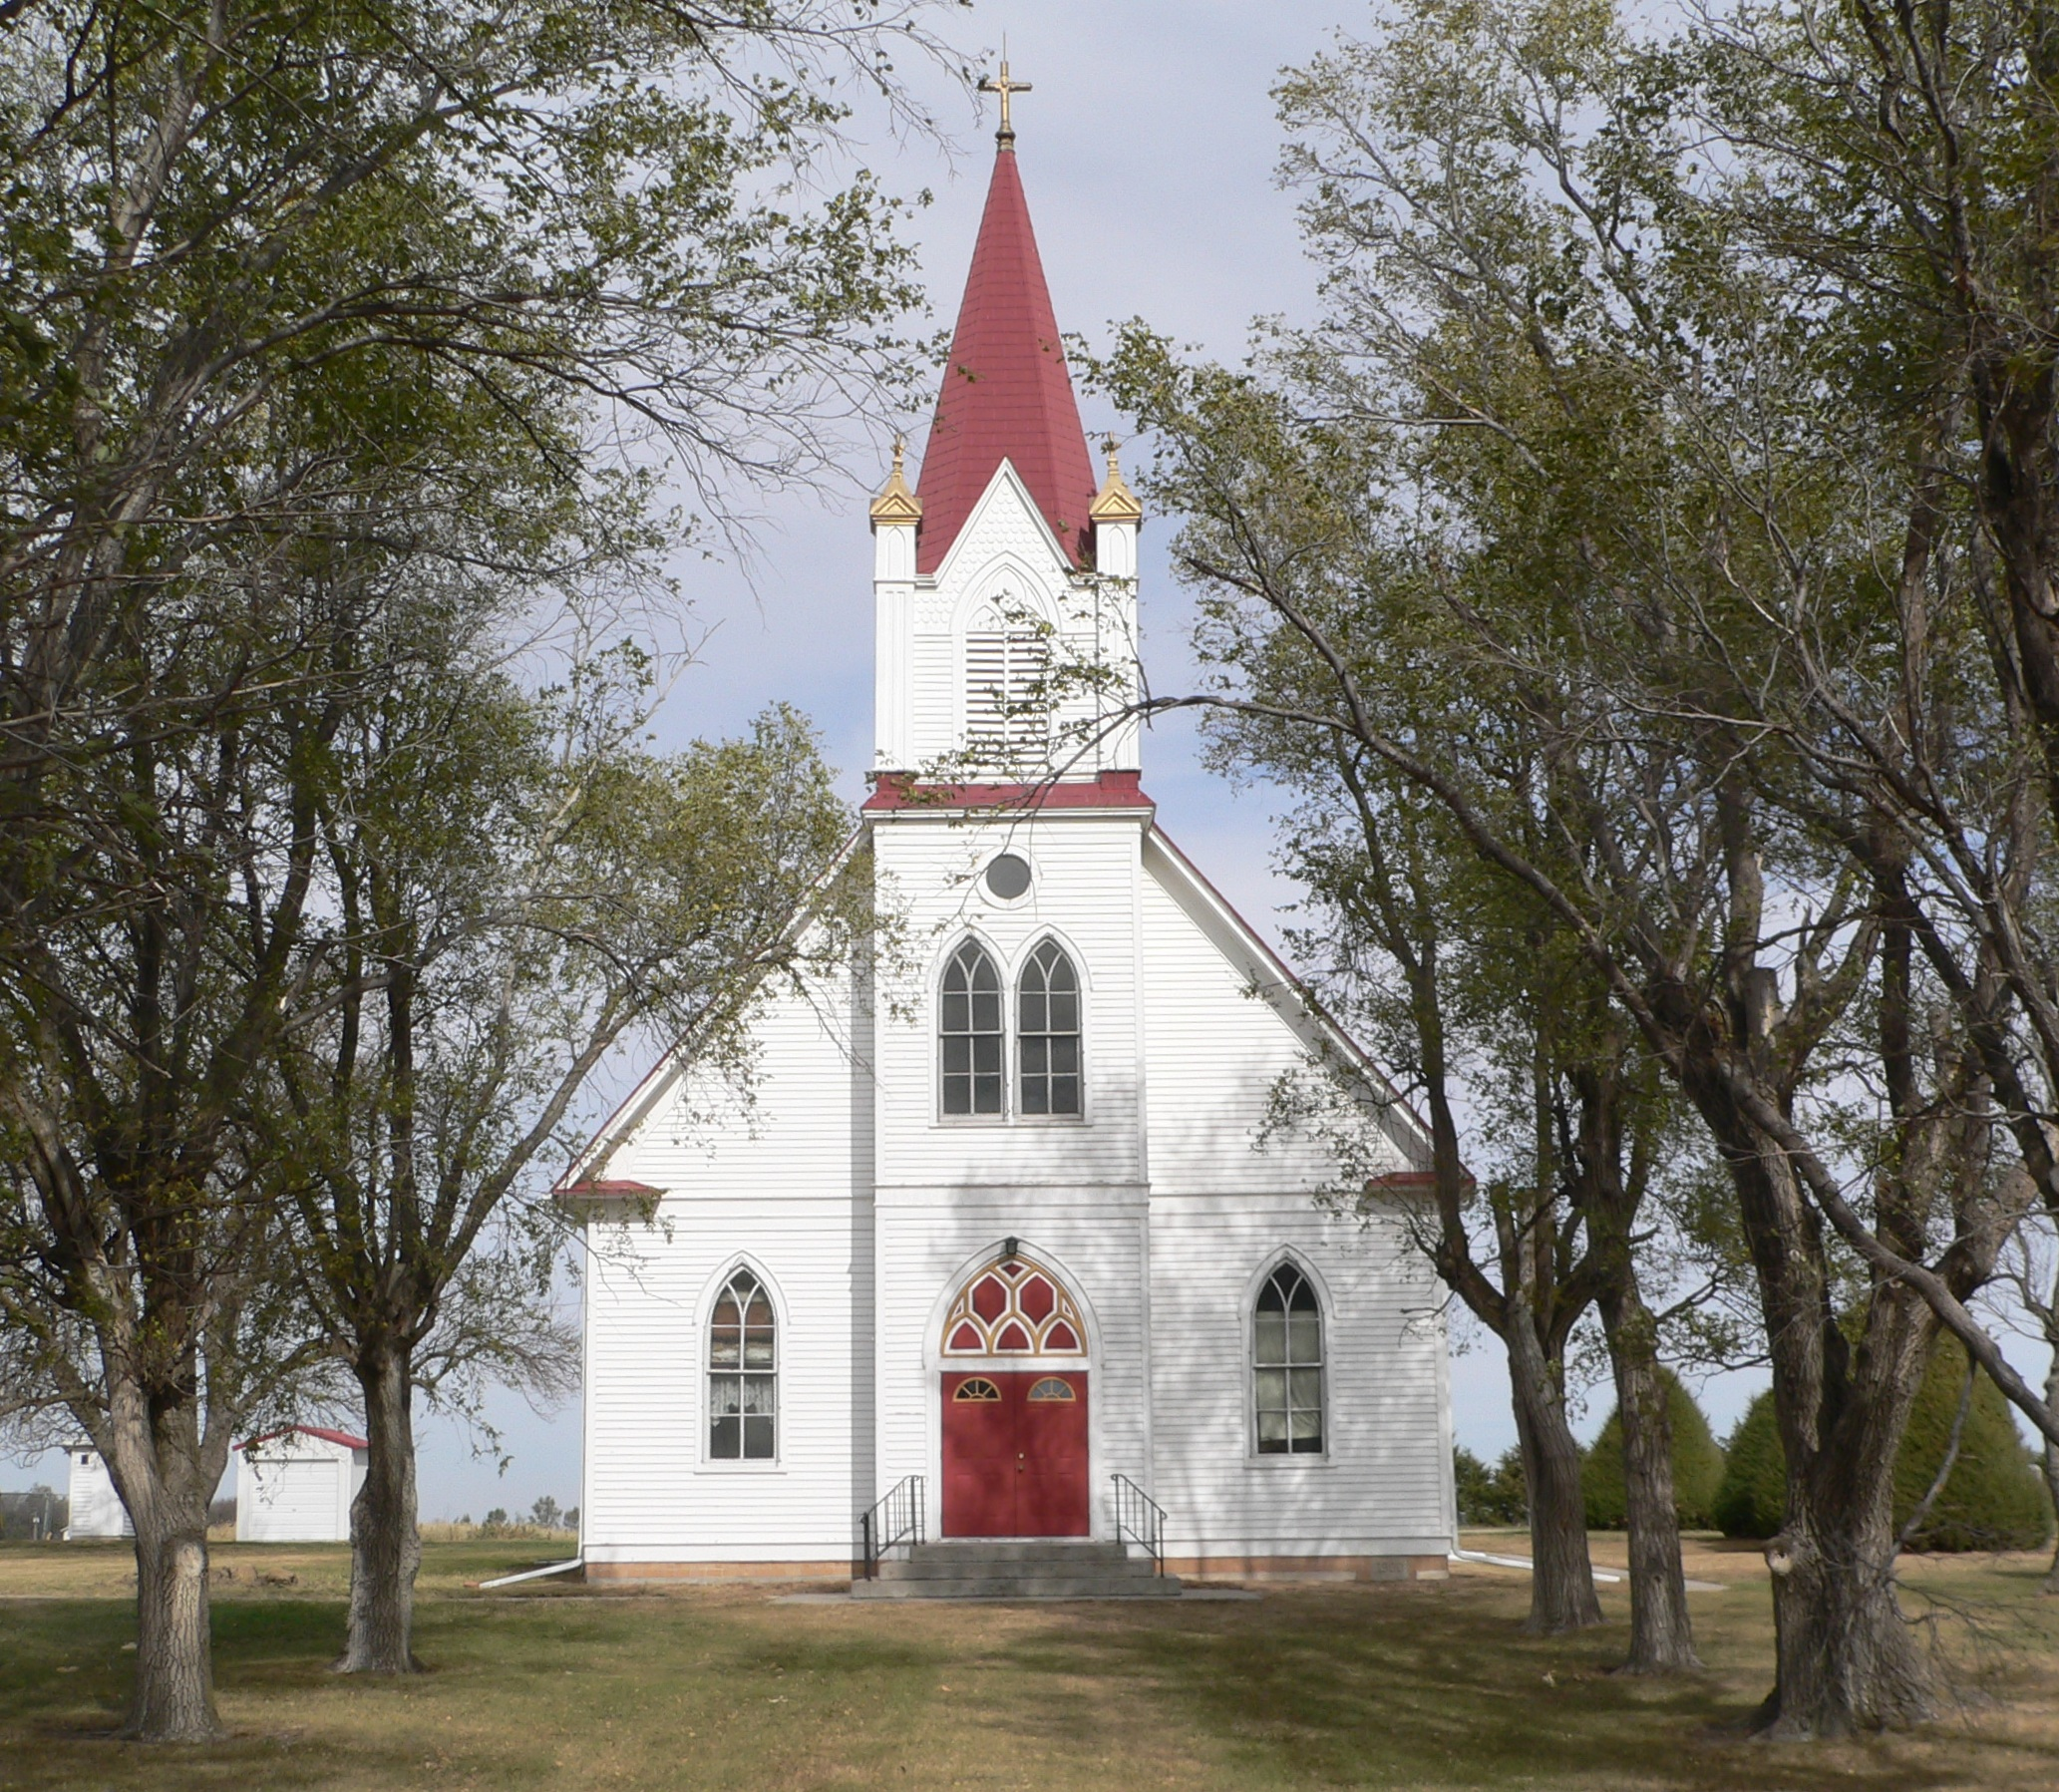 shickley dating Shickley is a city in fillmore county, nebraska the link below is to the most recent stories in a google news search for the terms shickley nebraska.